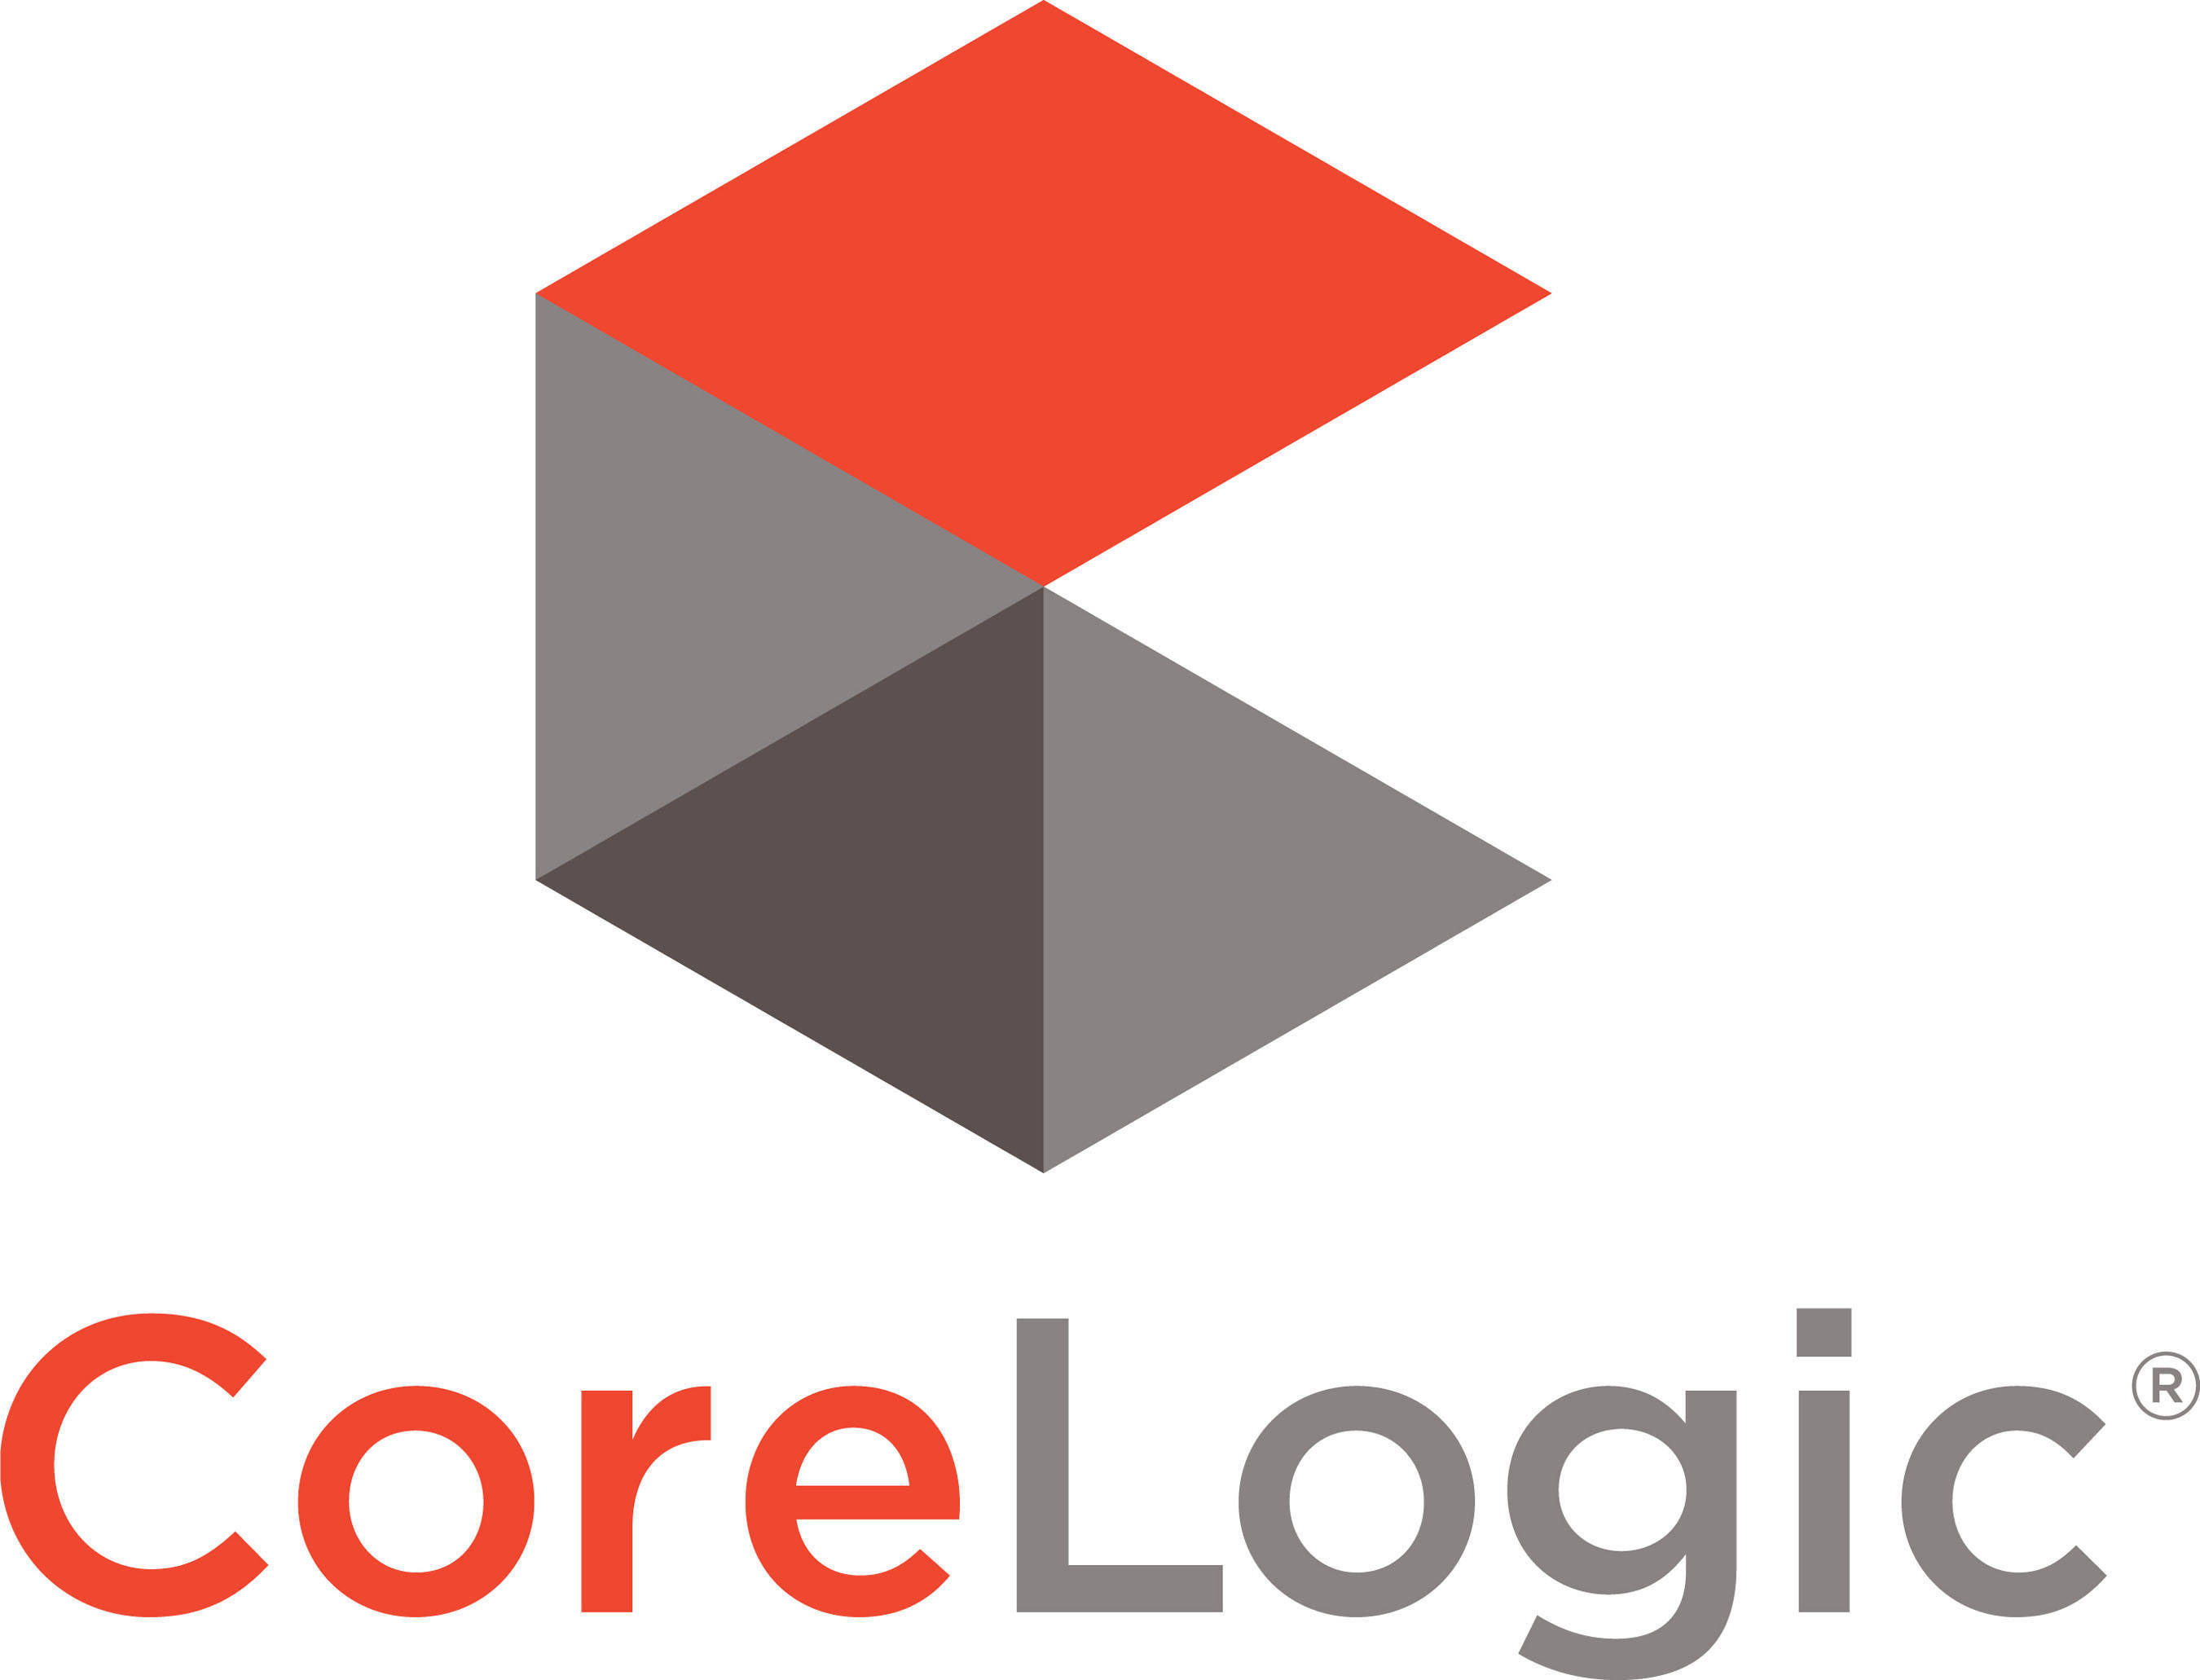 CoreLogic Reports National Homes Prices Rose by 5.9 Percent Year Over Year in March 2015